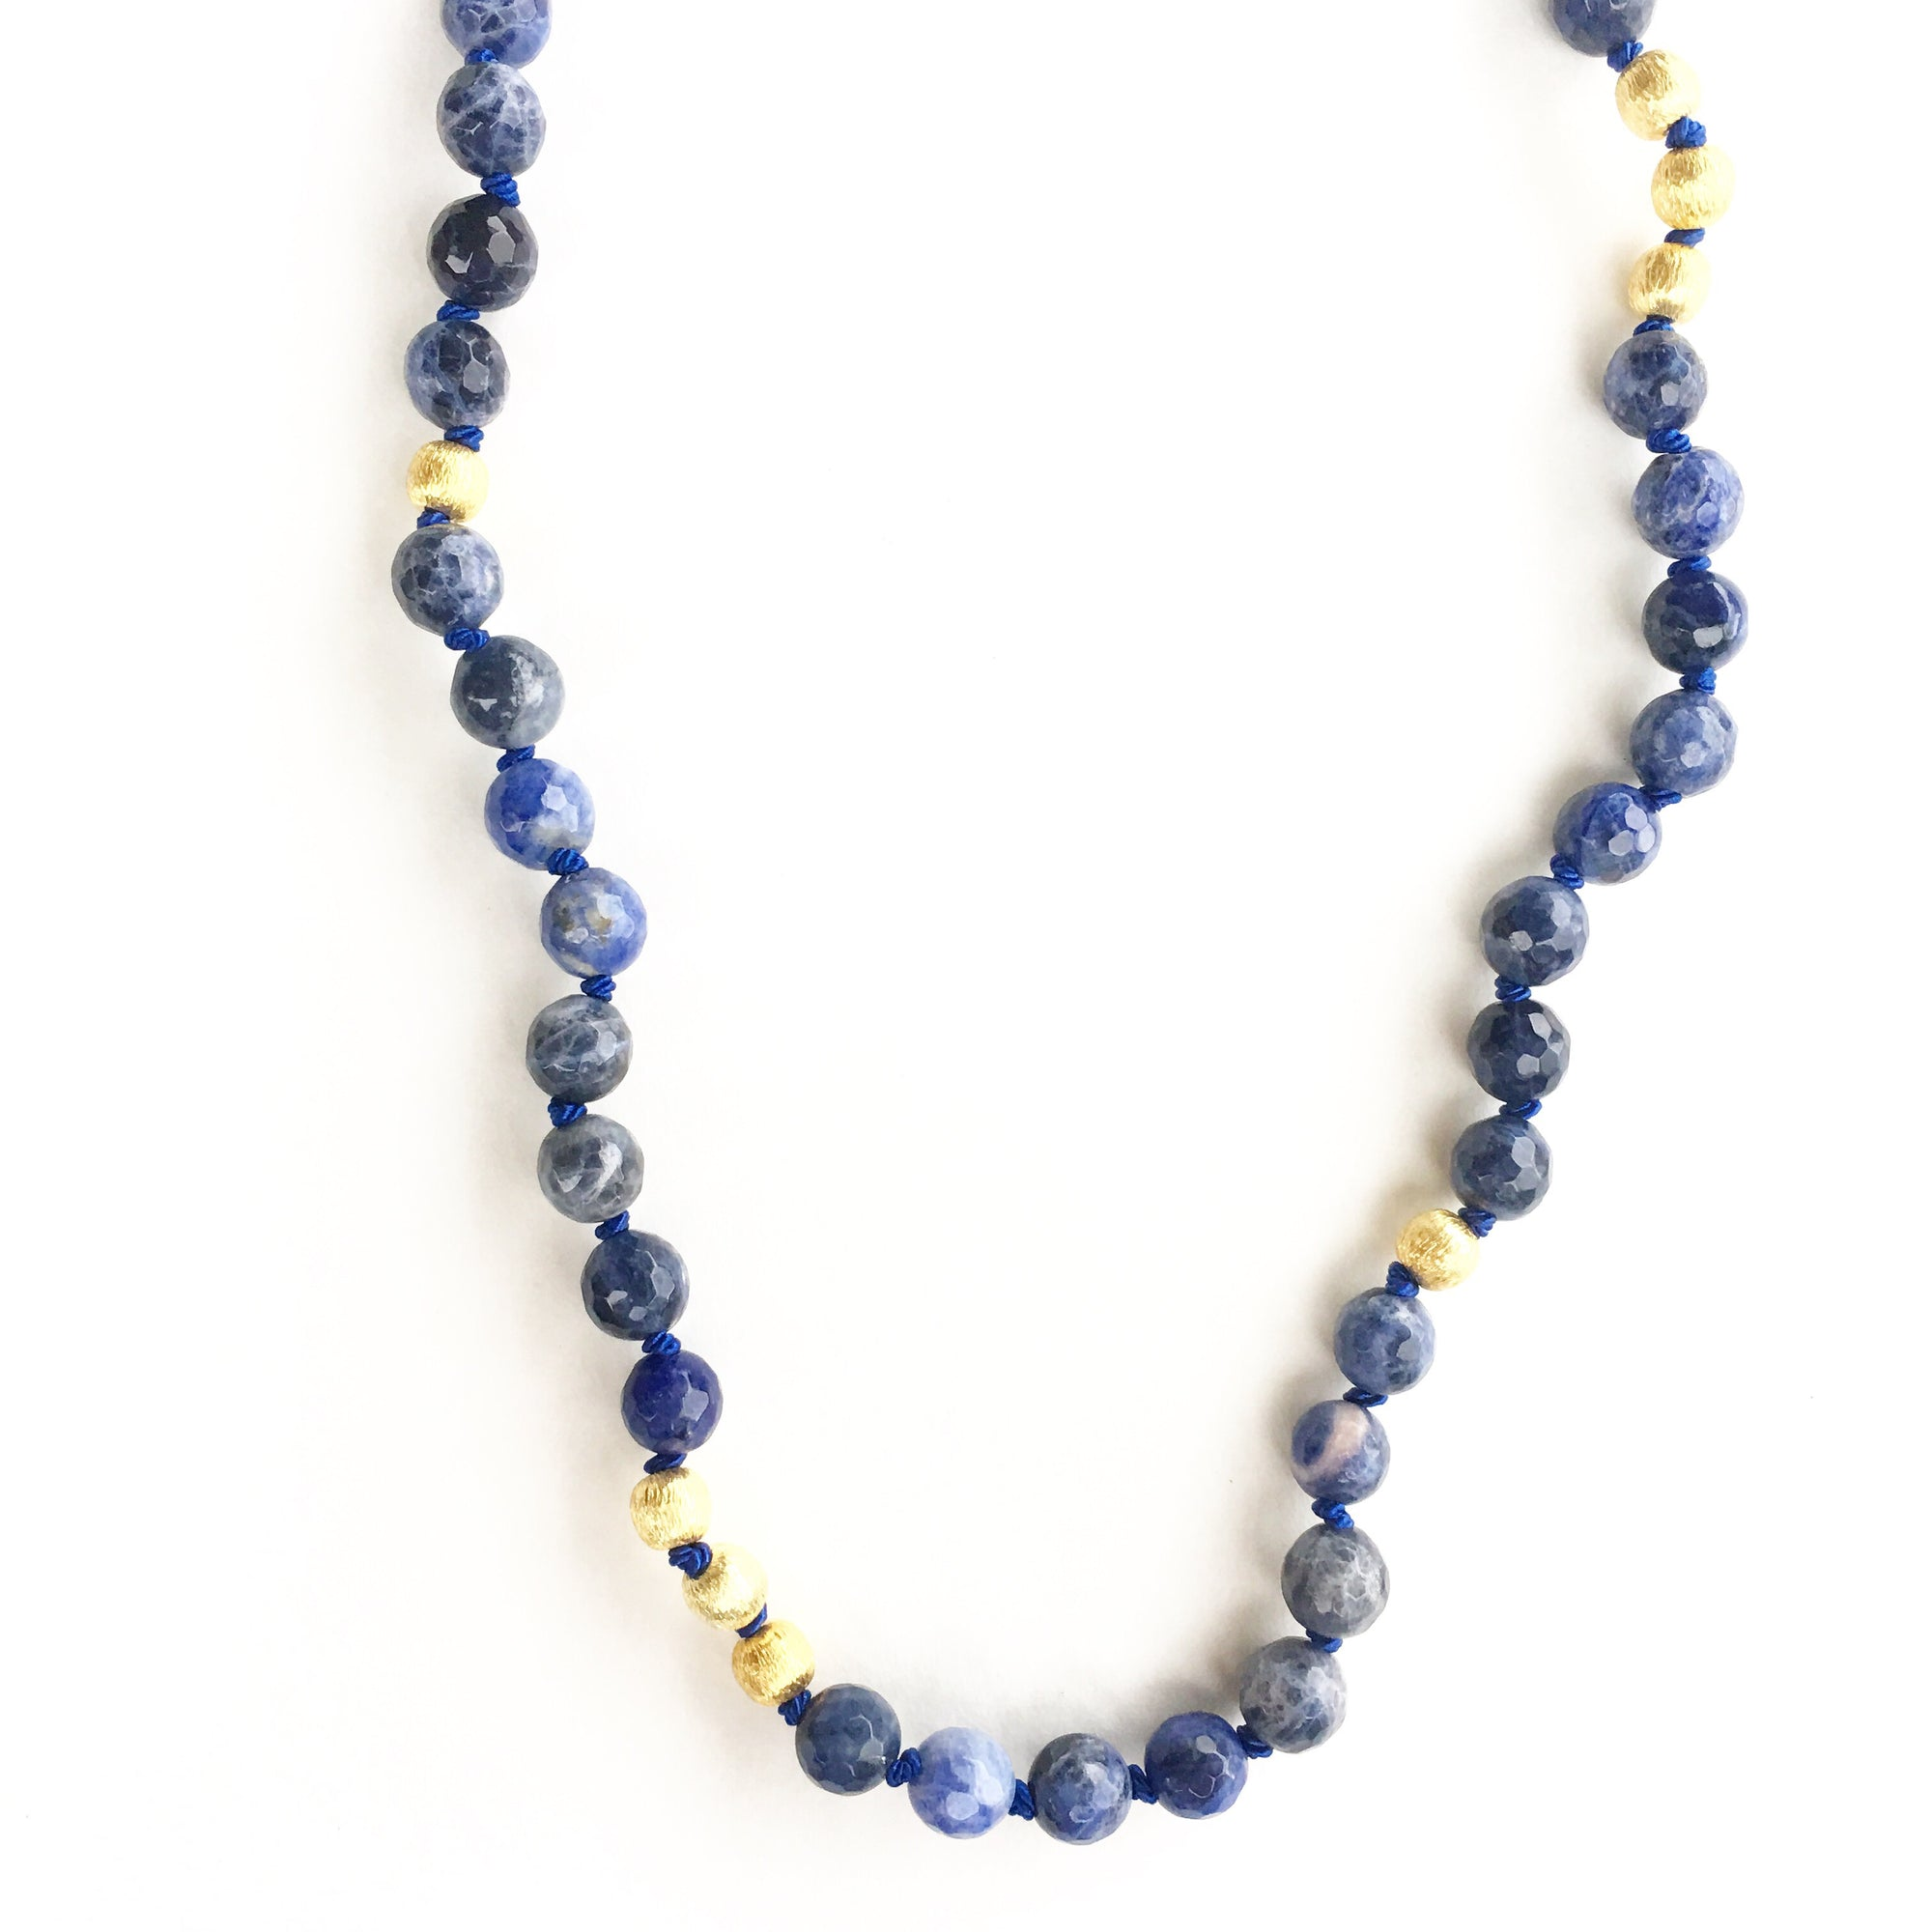 Solana Sodalite Necklace